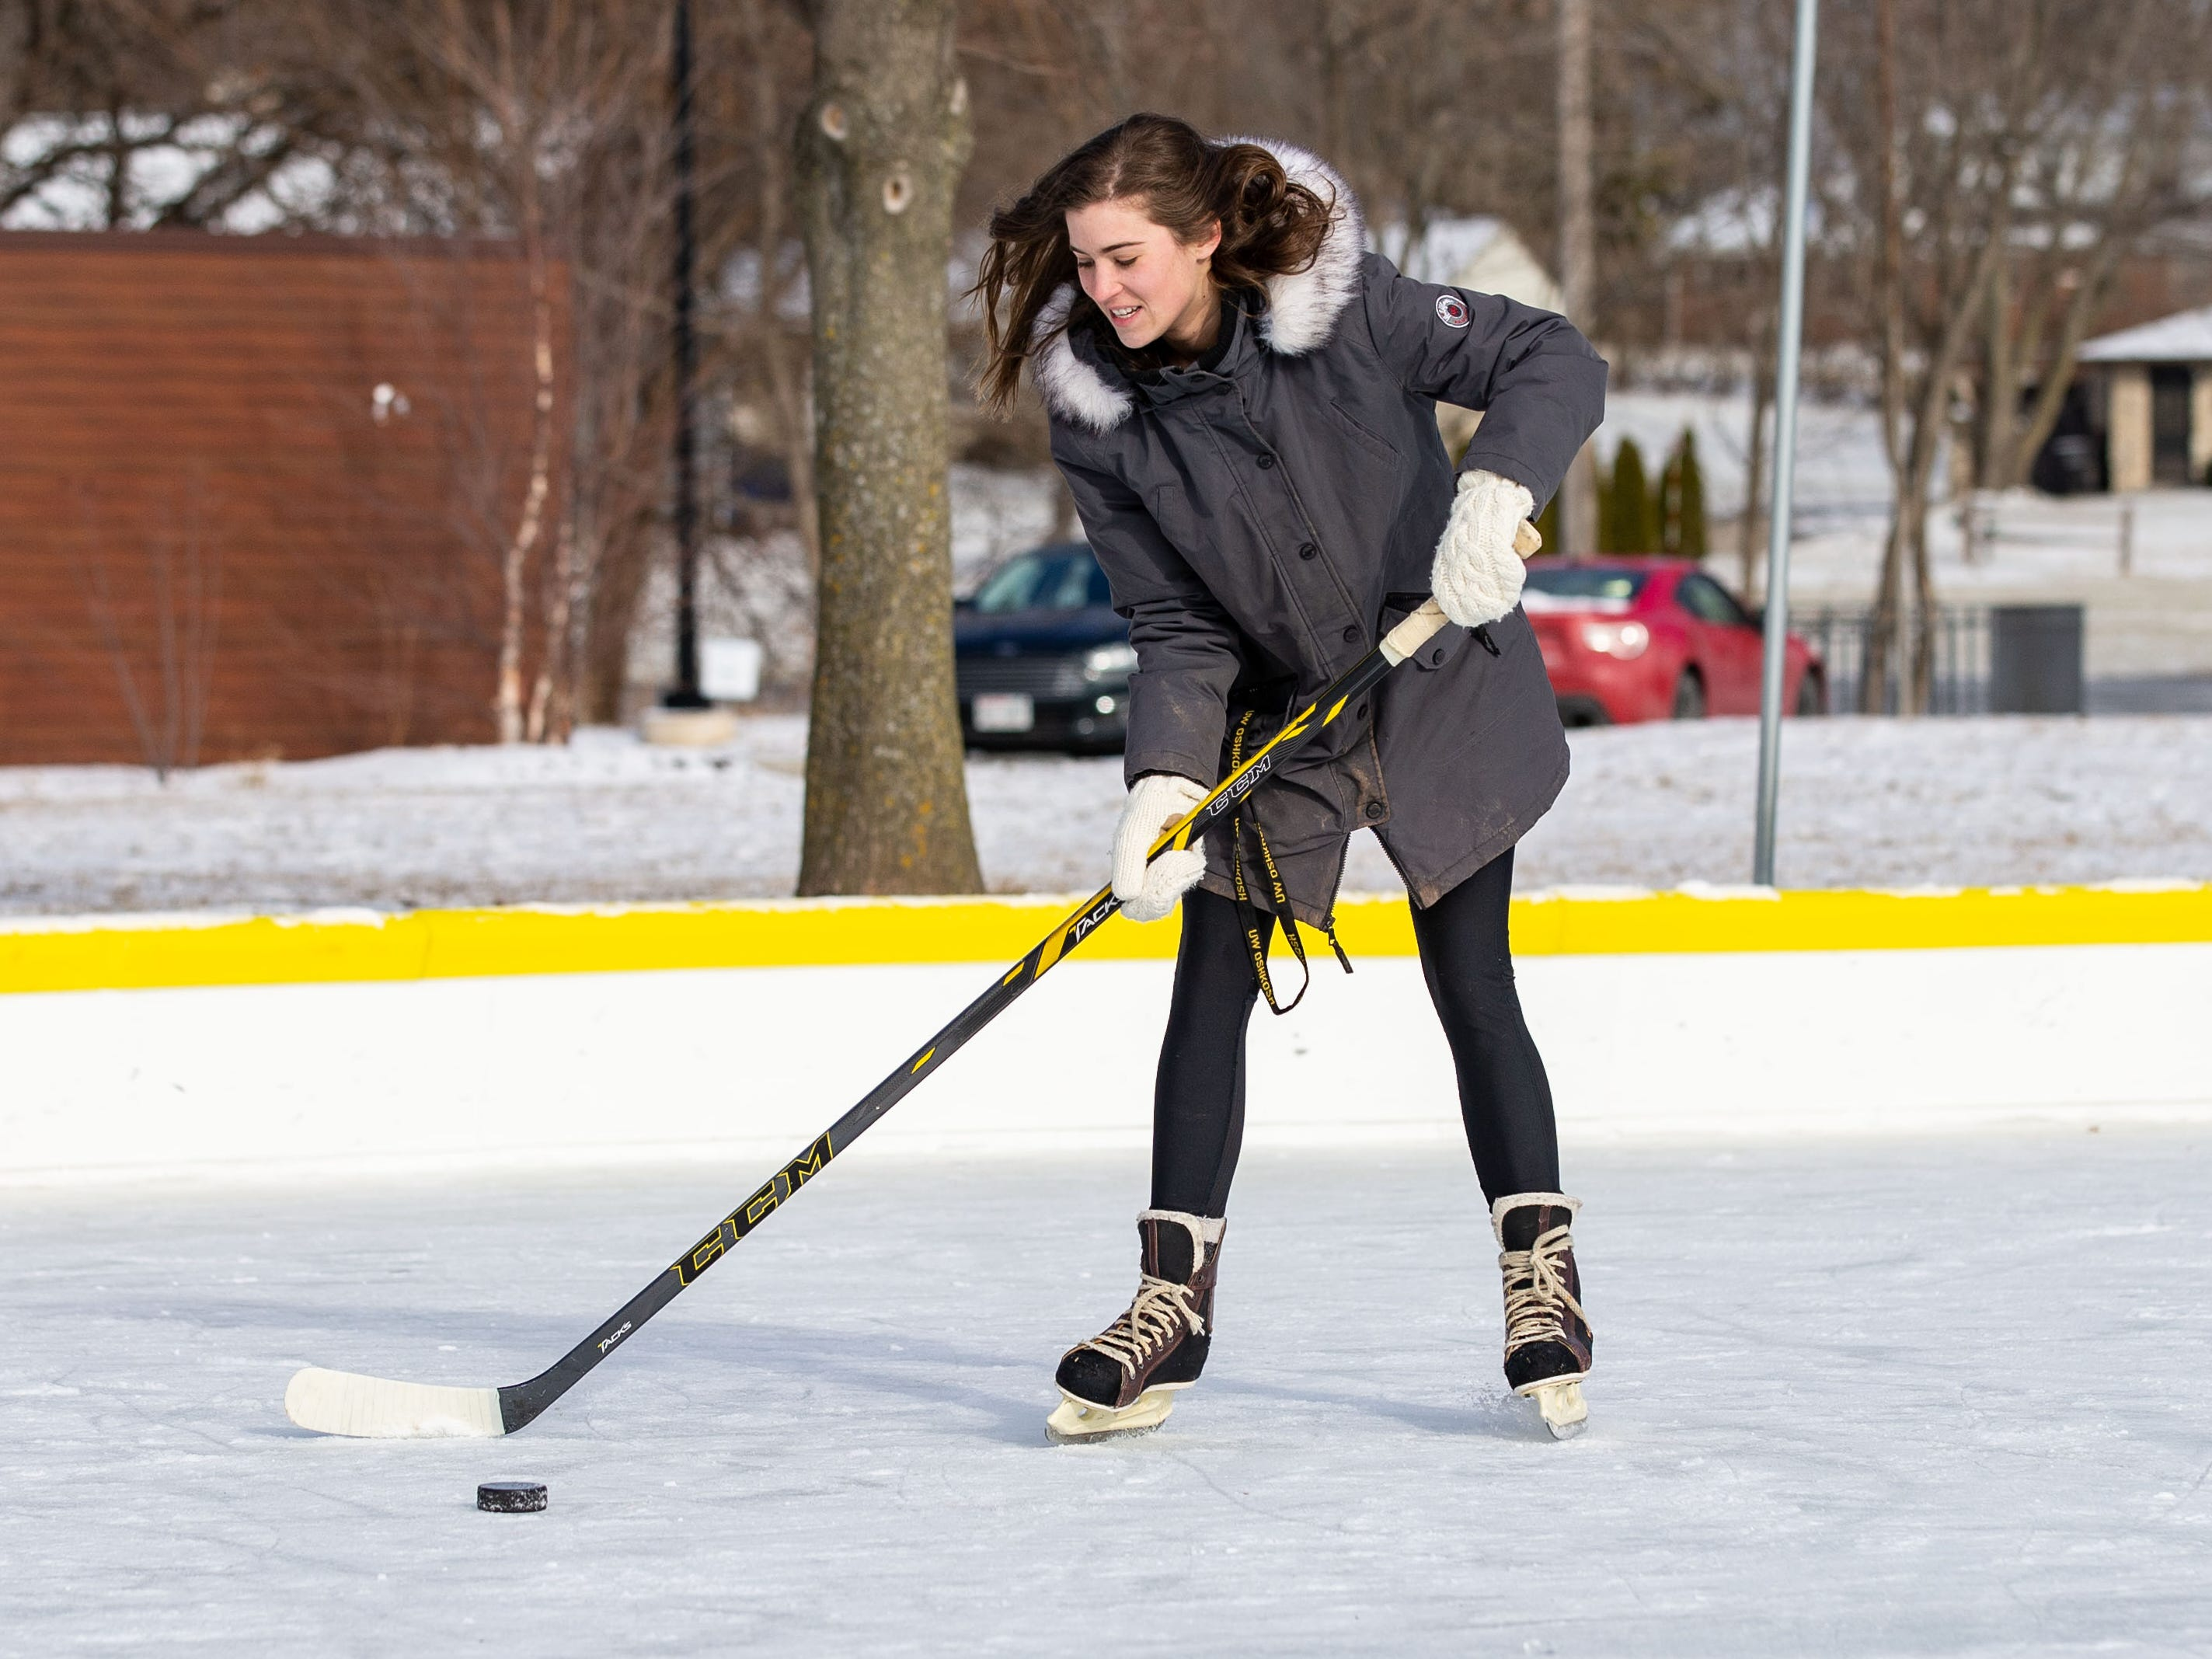 Maddie Schweitzer of Brookfield works on her hockey technique at the Sussex Civic Center ice rink on Sunday, Dec. 30, 2018. The rink is open seven days a week as weather permits. For hours and info visit villagesussex.org.